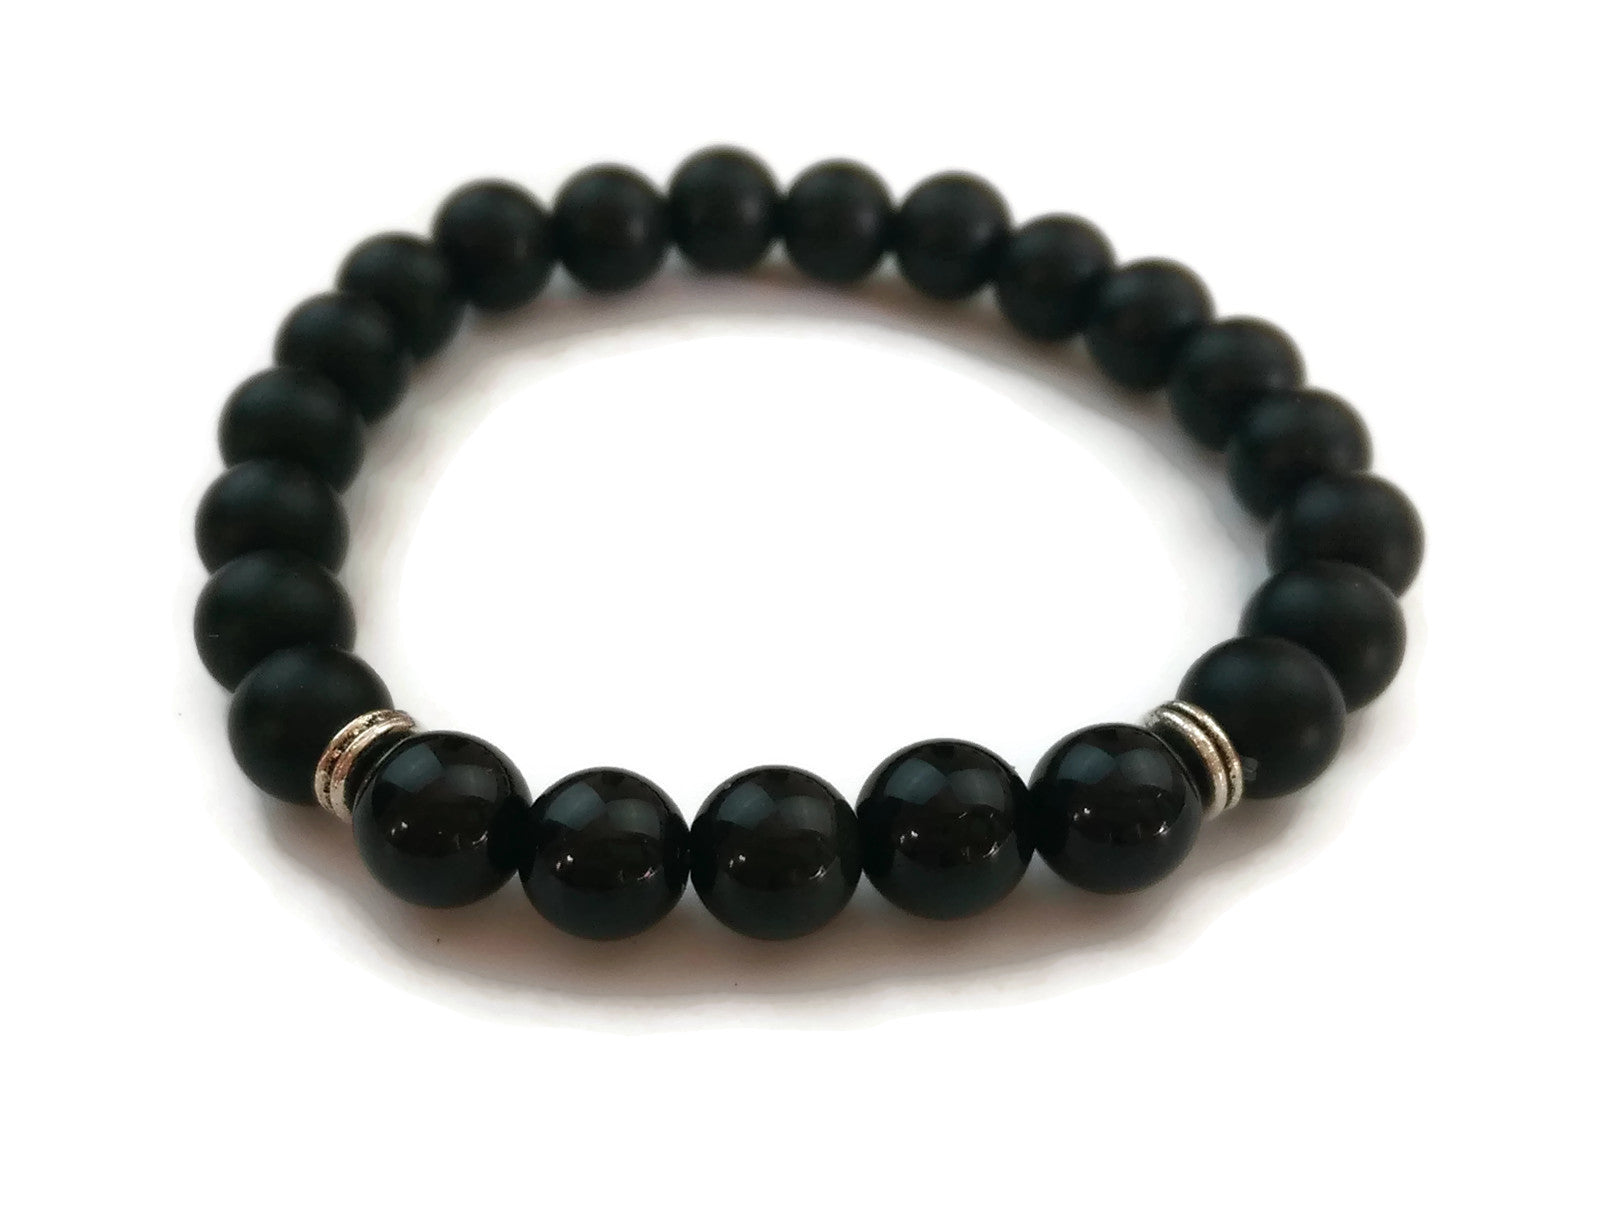 8mm Black Matte Obsidian and Ice Obsidian Stone Silver Stretch Bracelet Minimal Meditation Yoga Stackable Wrist Mala Stretch Root Chakra